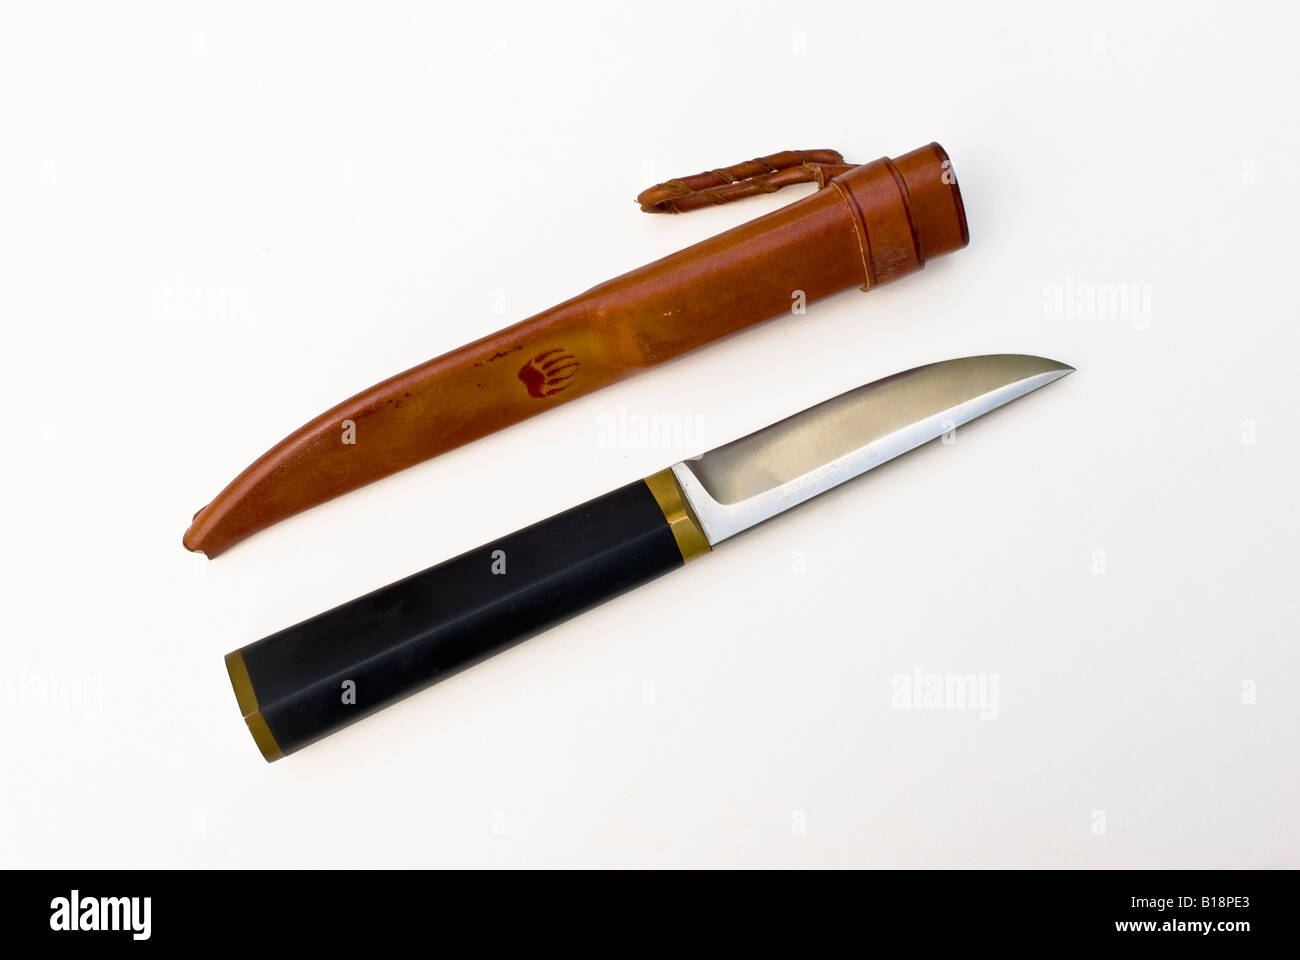 sharp hunting knife. sharp steel hunting knife by hackman from finland with a leather sheath l